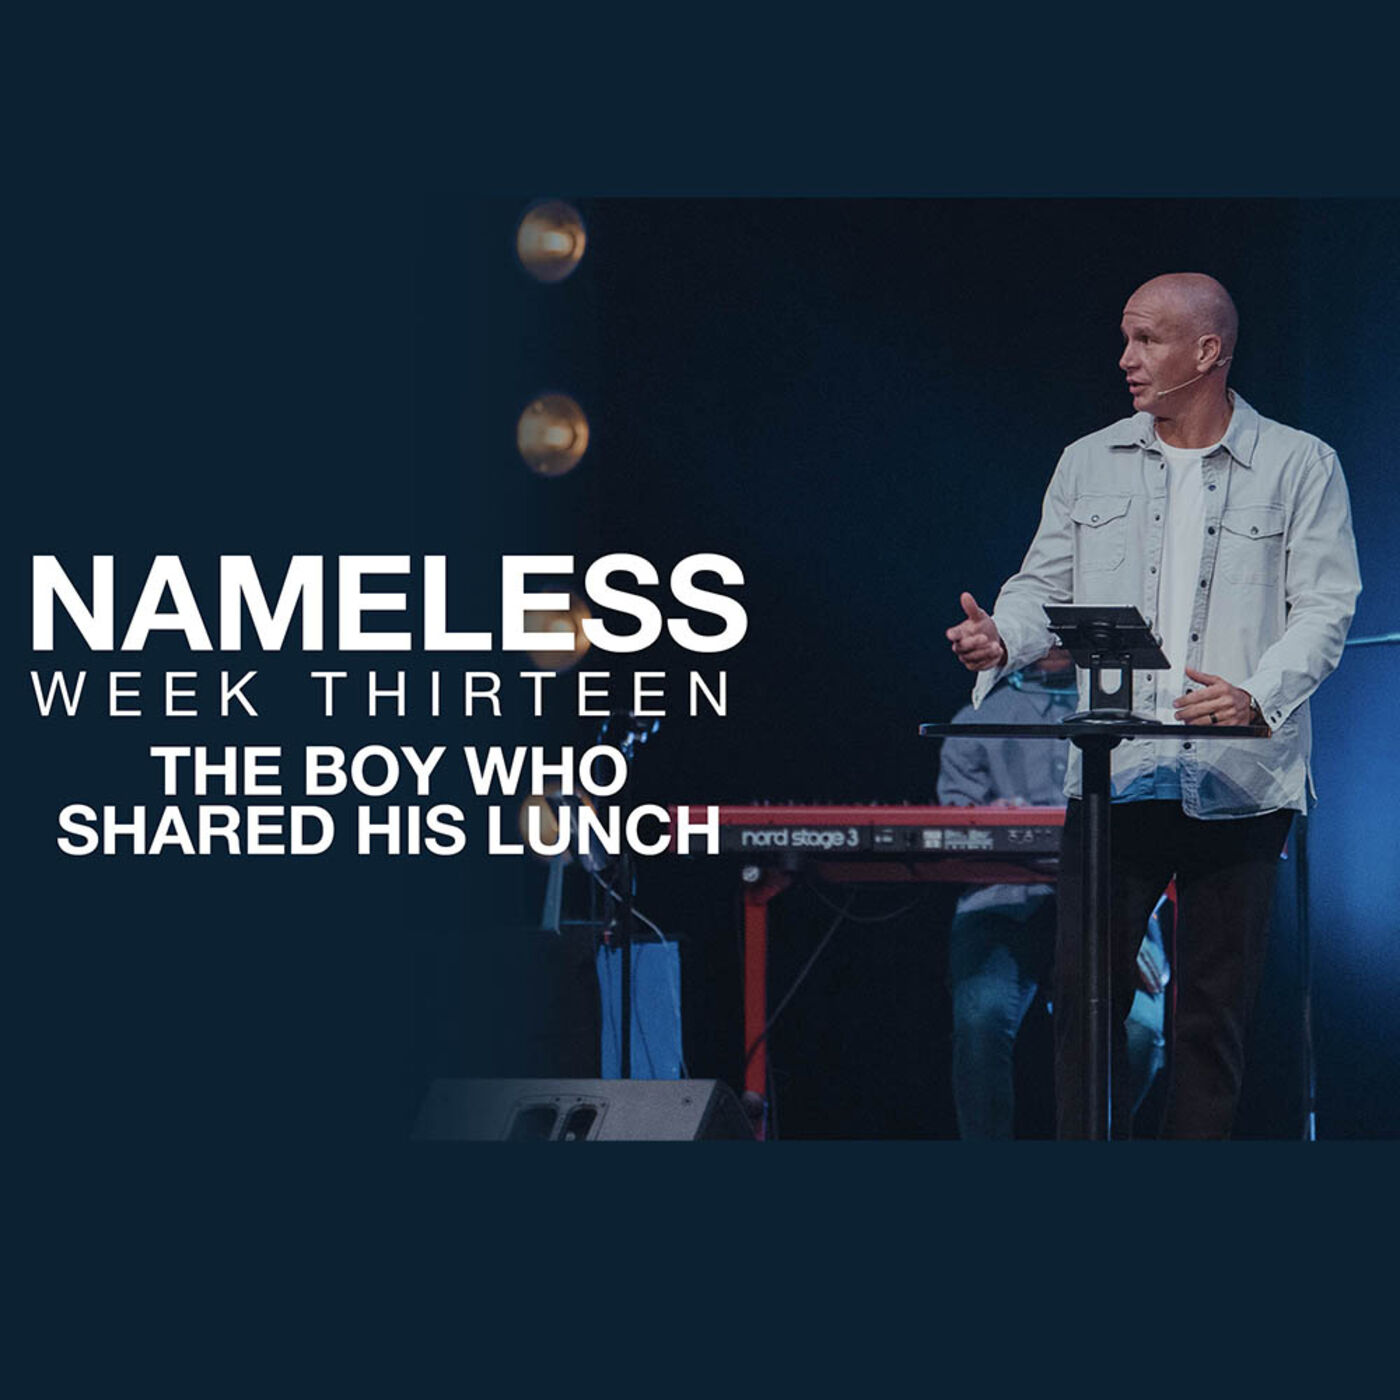 Nameless Week Thirteen // The Boy Who Shared His Lunch